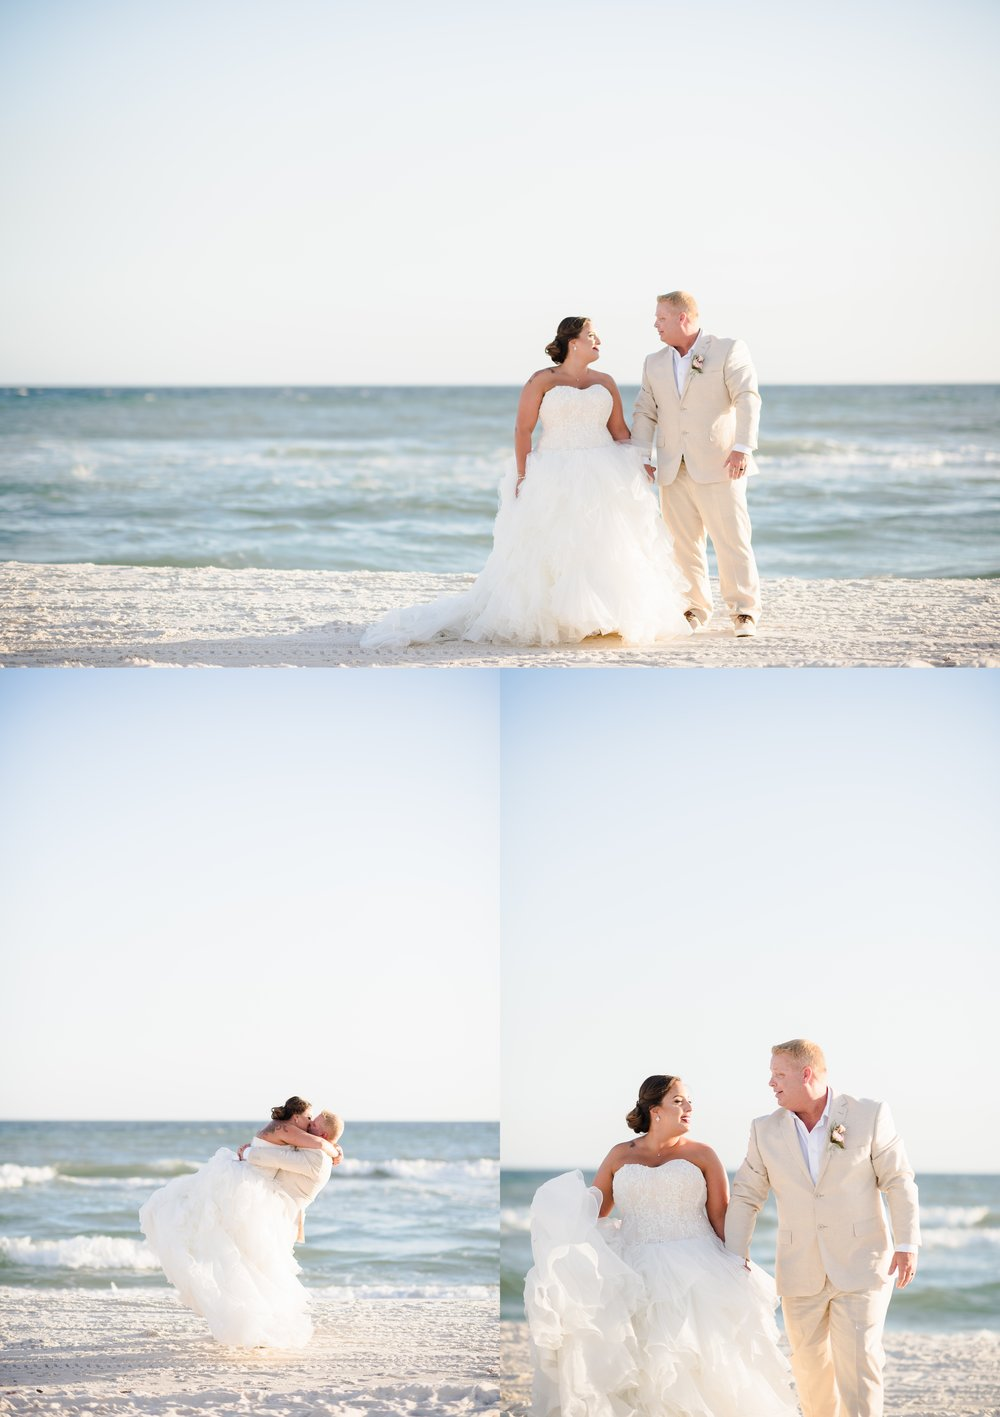 florida-wedding-photographer-kiersten-grant-68.jpg